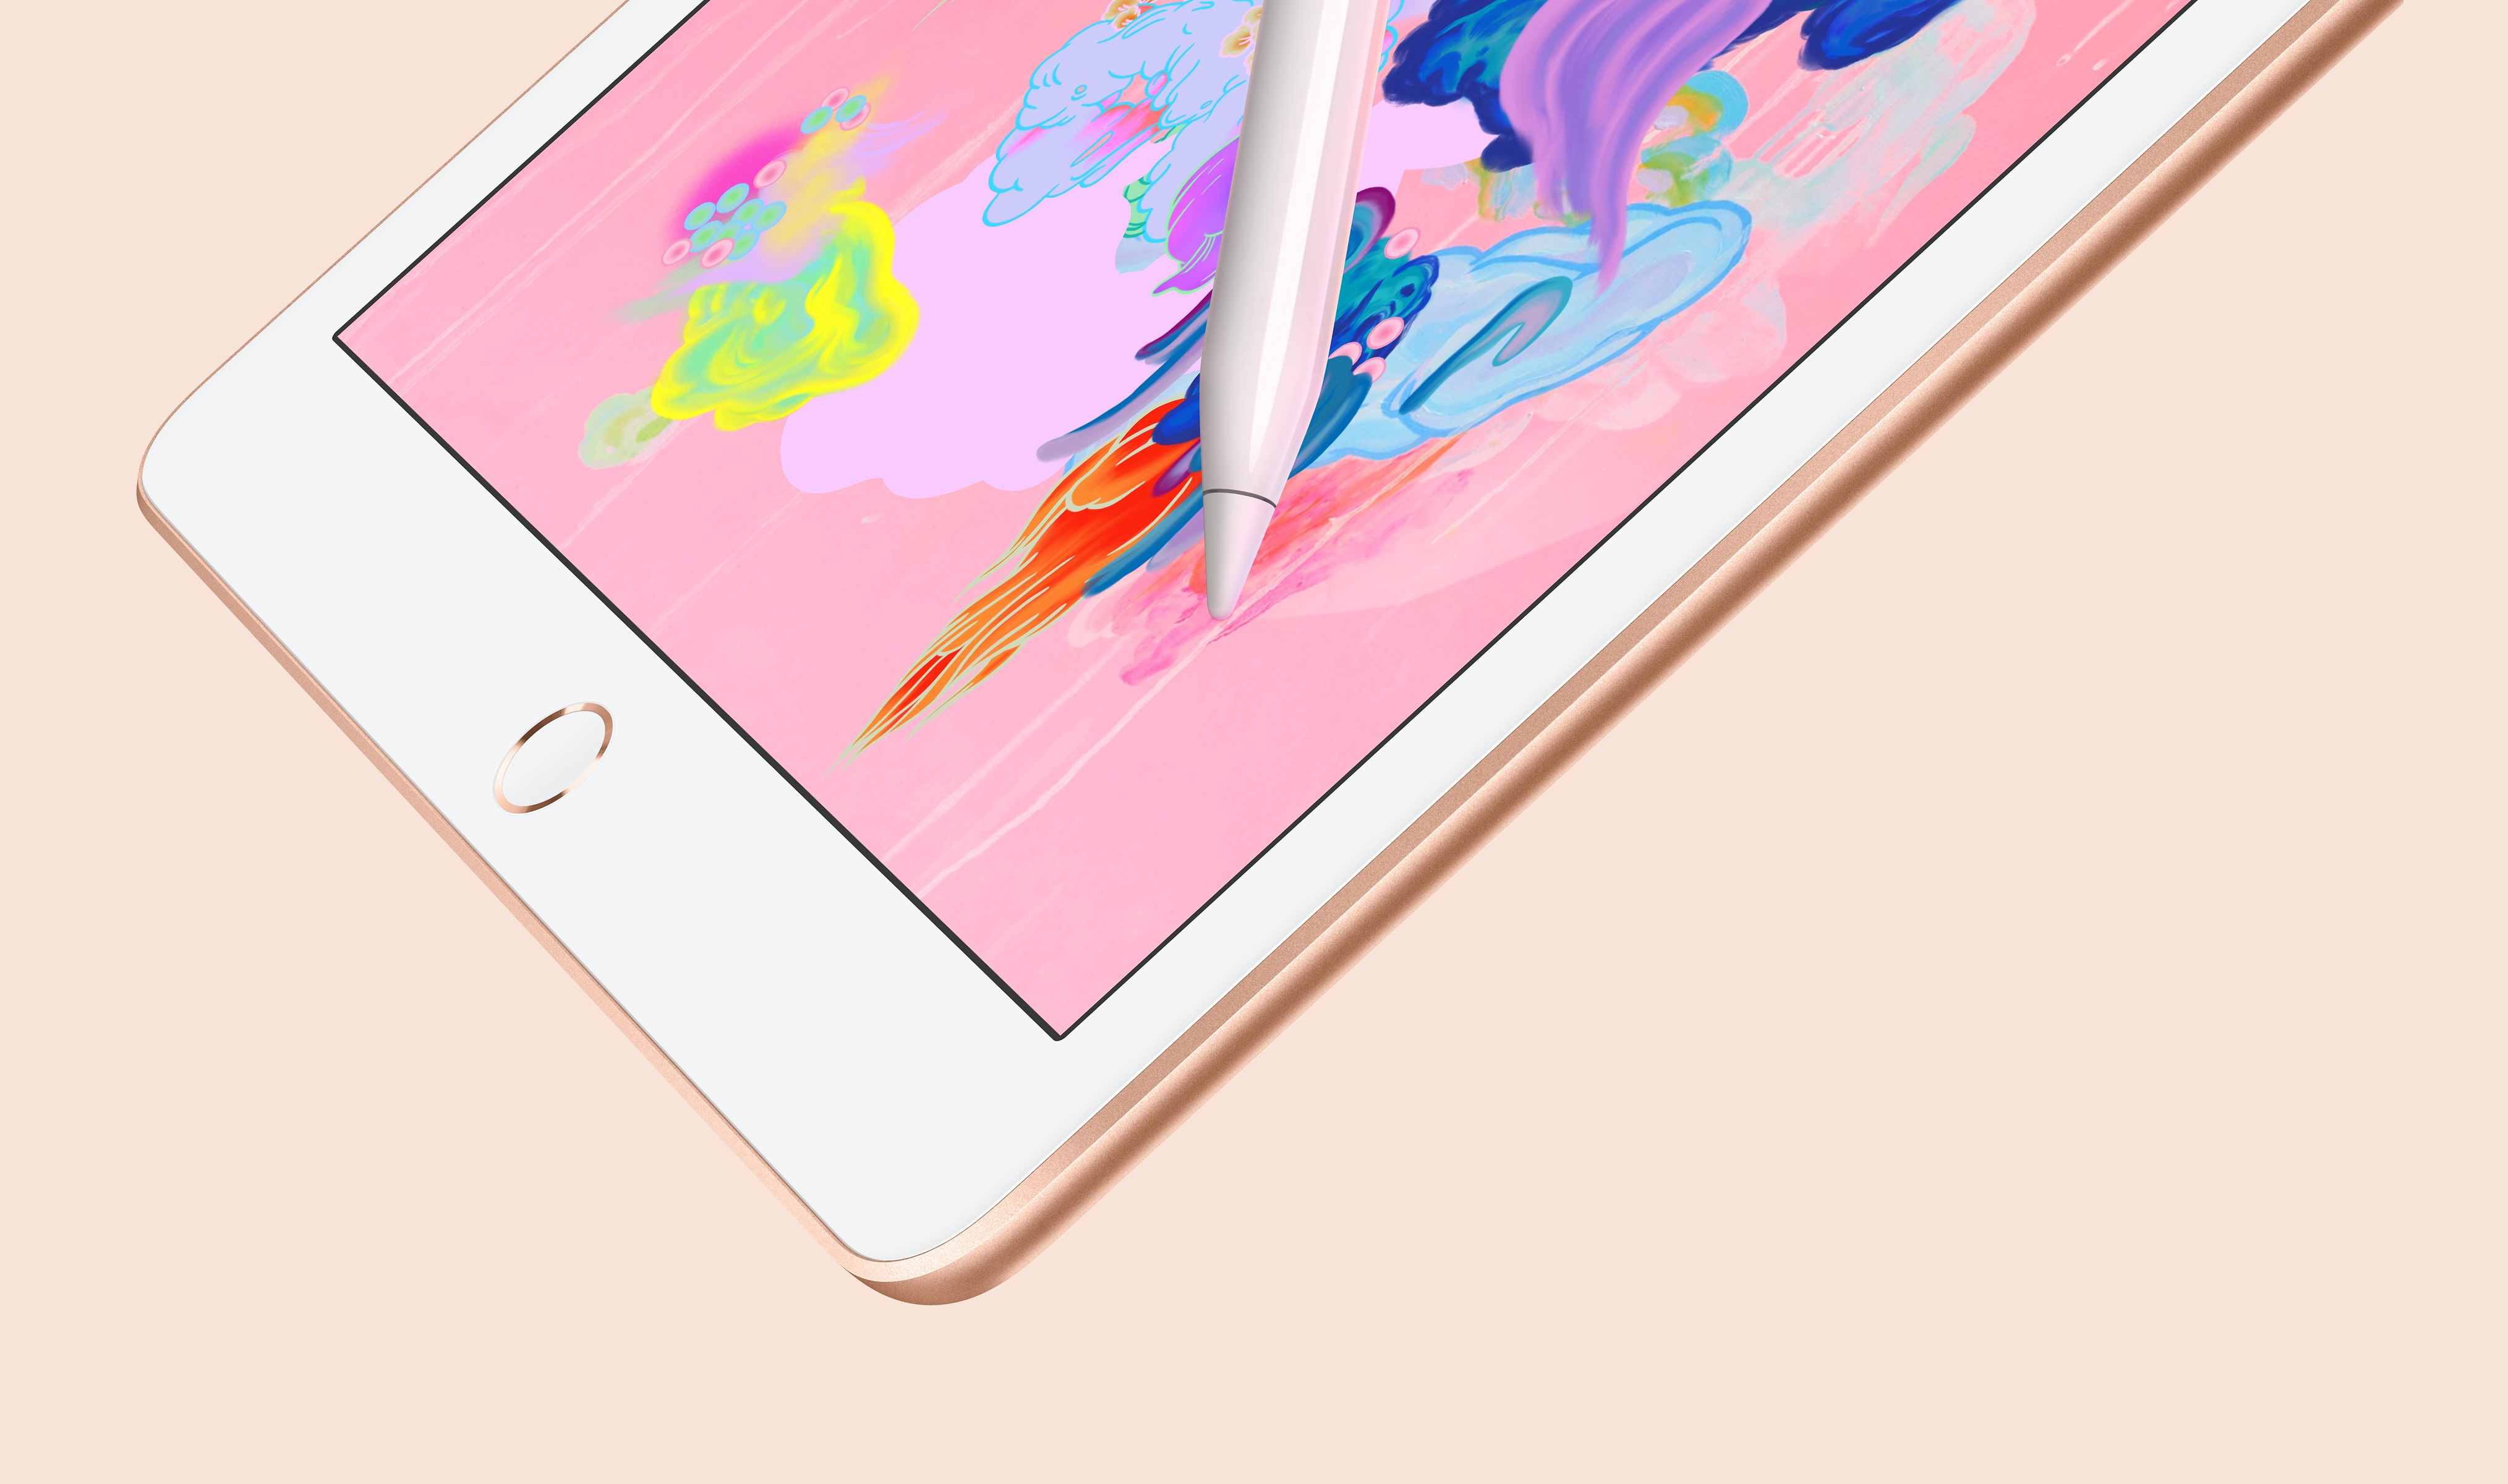 The Apple Pencil 2 is $130, but this awesome alternative is only $24